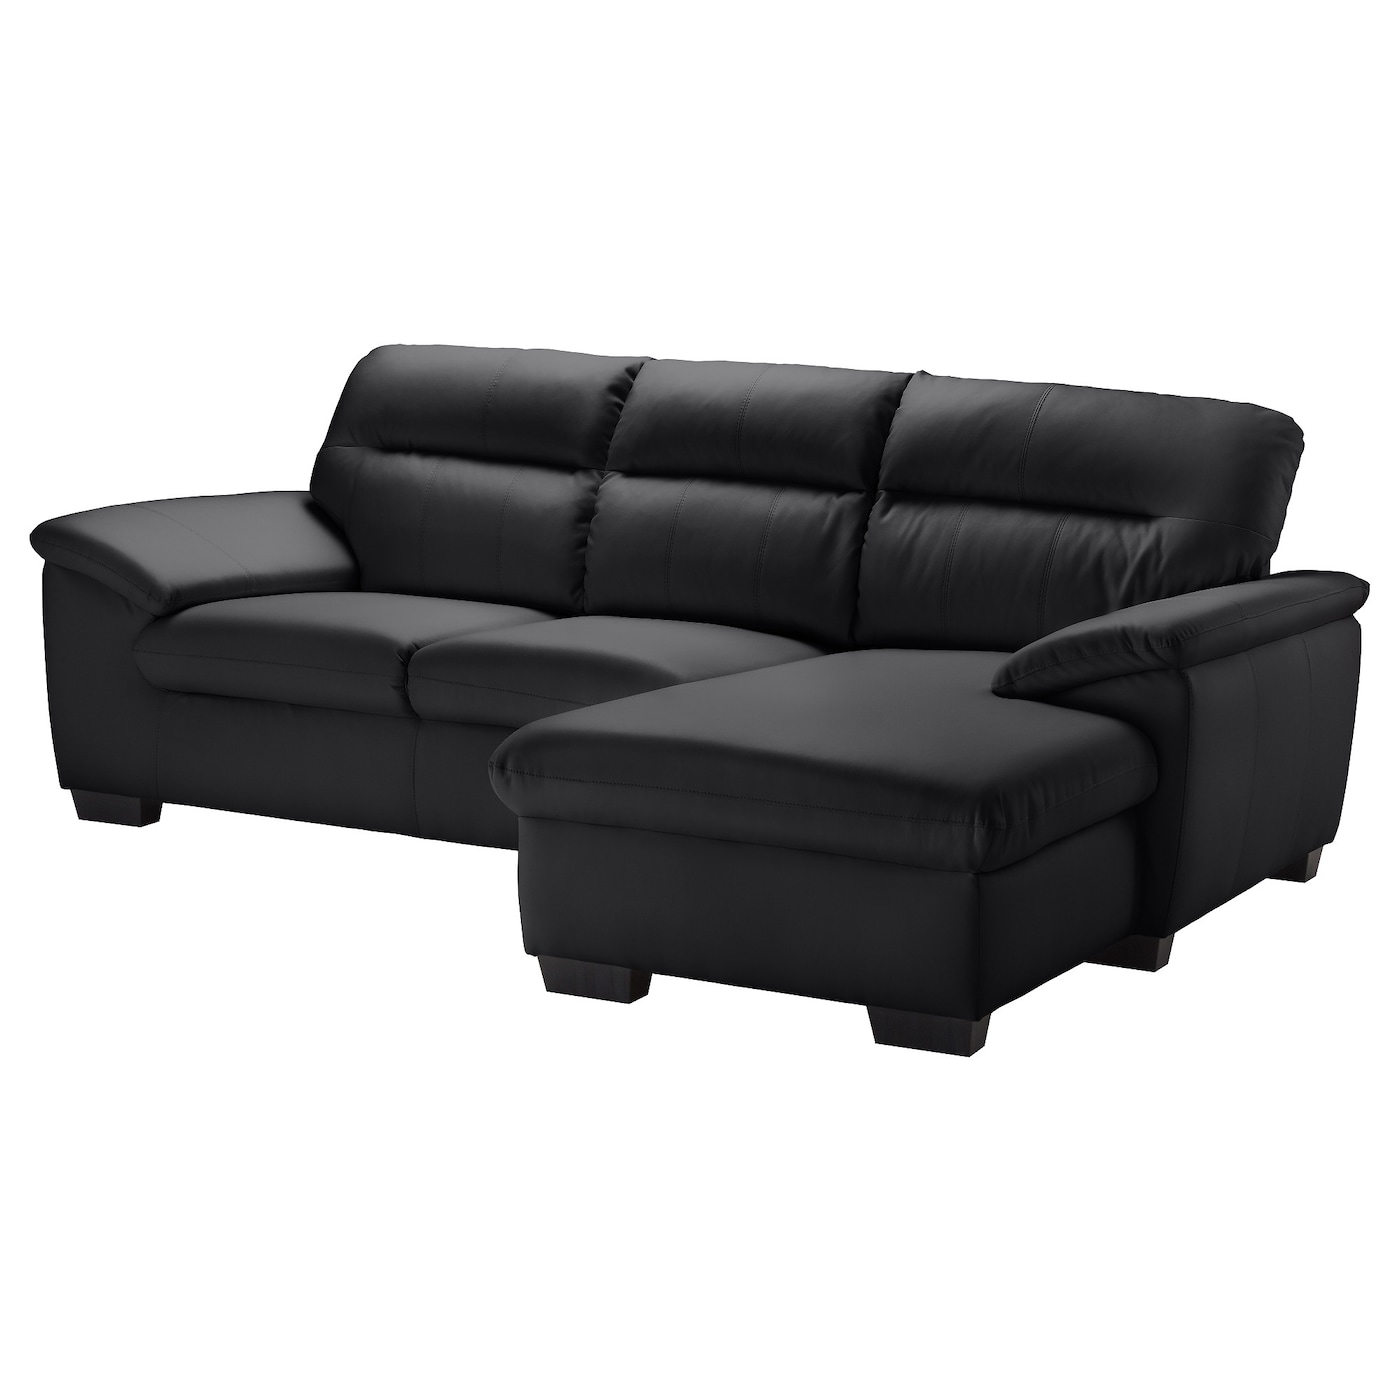 IKEA MALVIKEN two-seat sofa with chaise longue